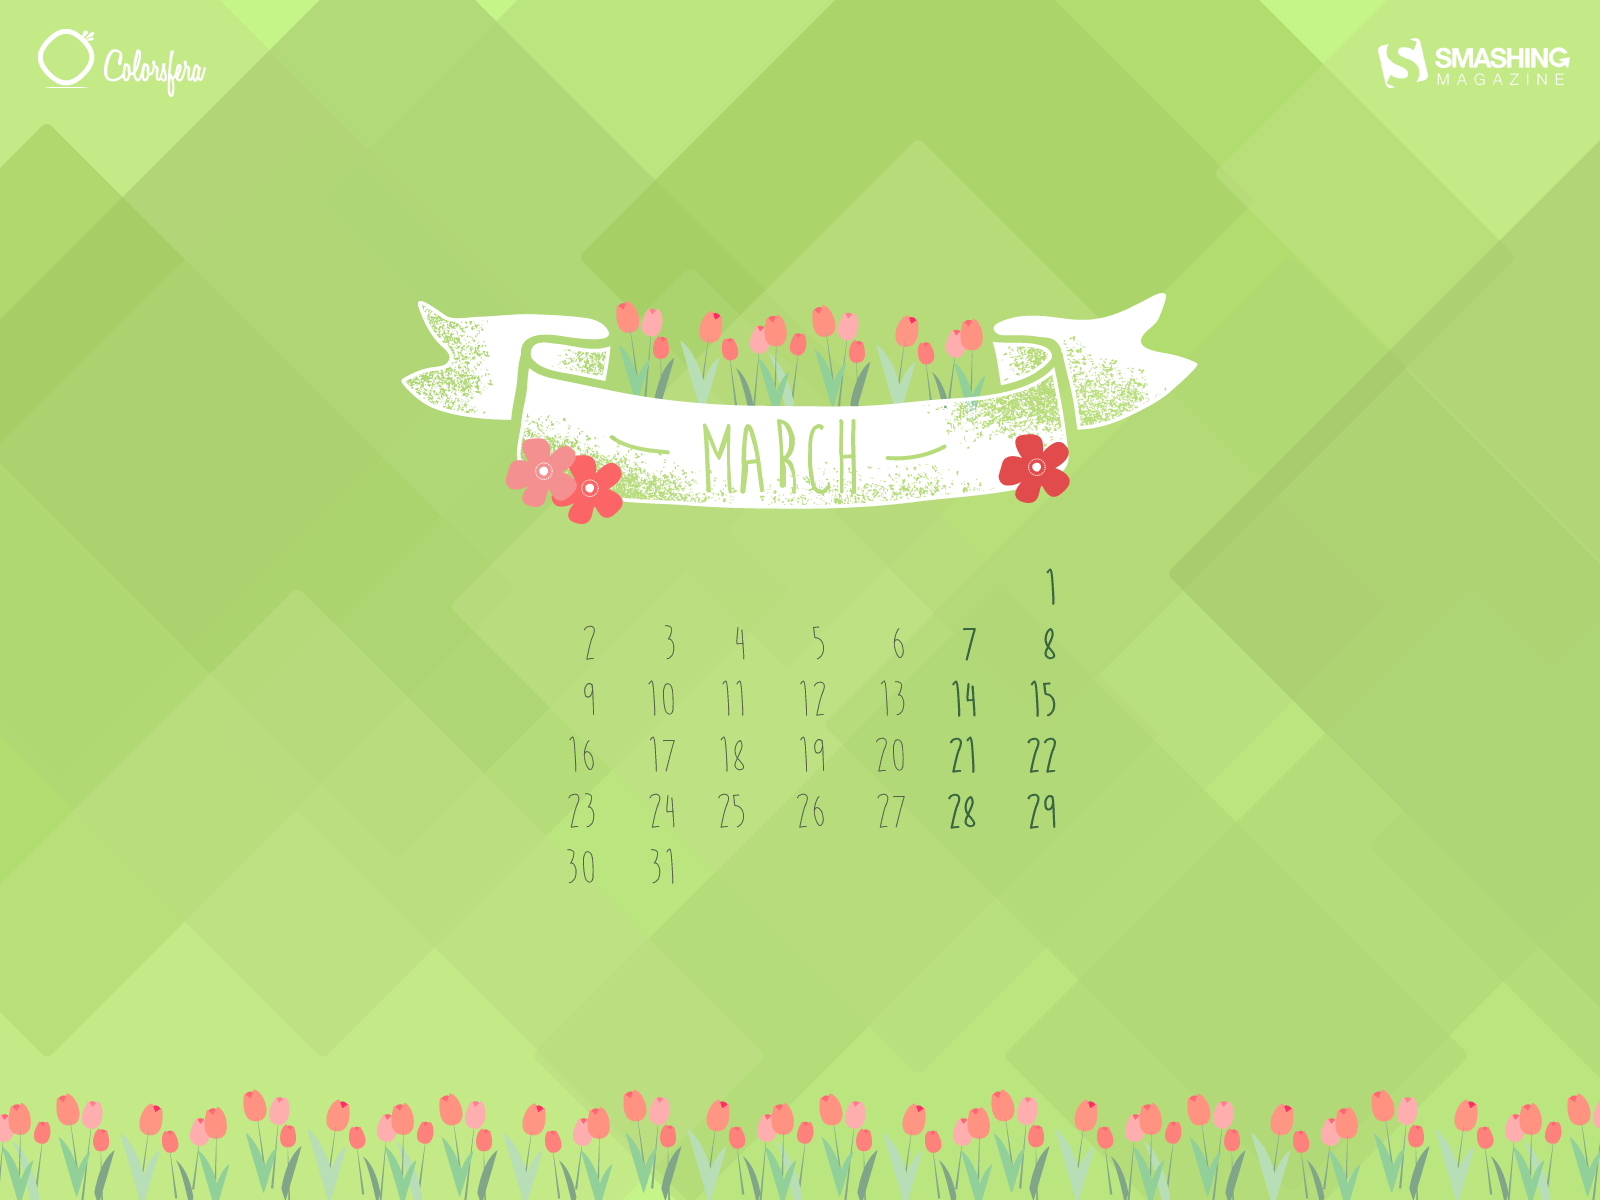 Desktop Wallpaper Calendars March 2015   Print2Web 1600x1200